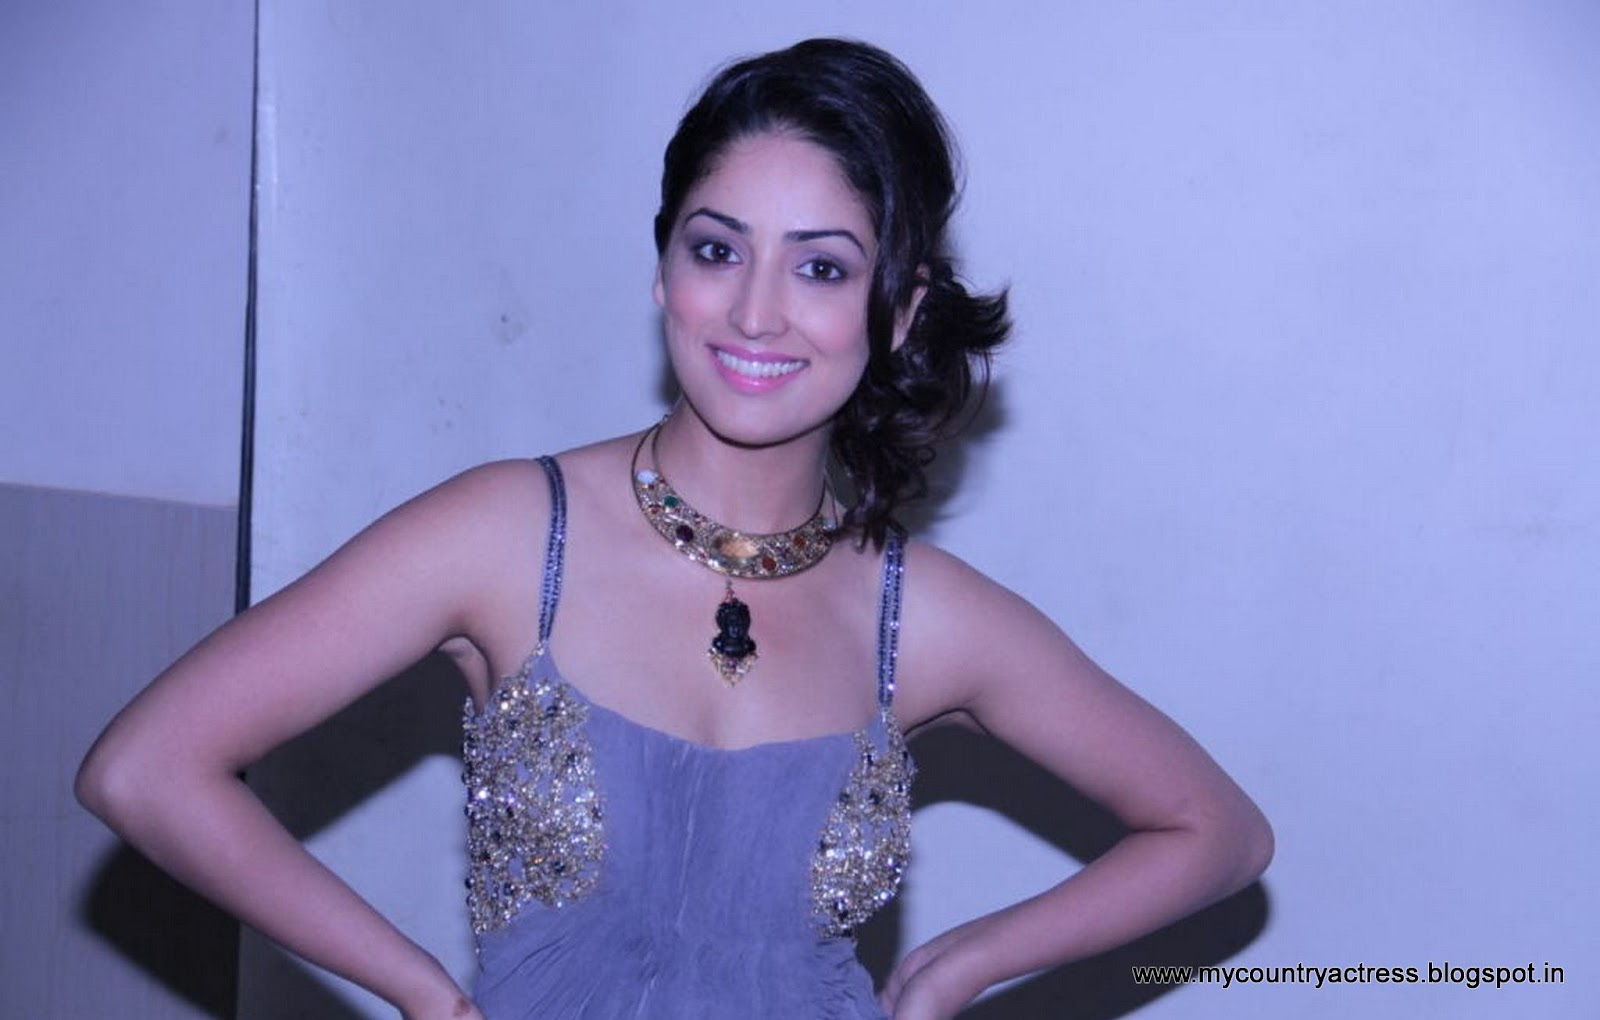 Bollywood Actress Yami Gautam Photoshoot: MY INDIA ACTRESS: Actress Yami Gautam Latest Hot Photoshoot